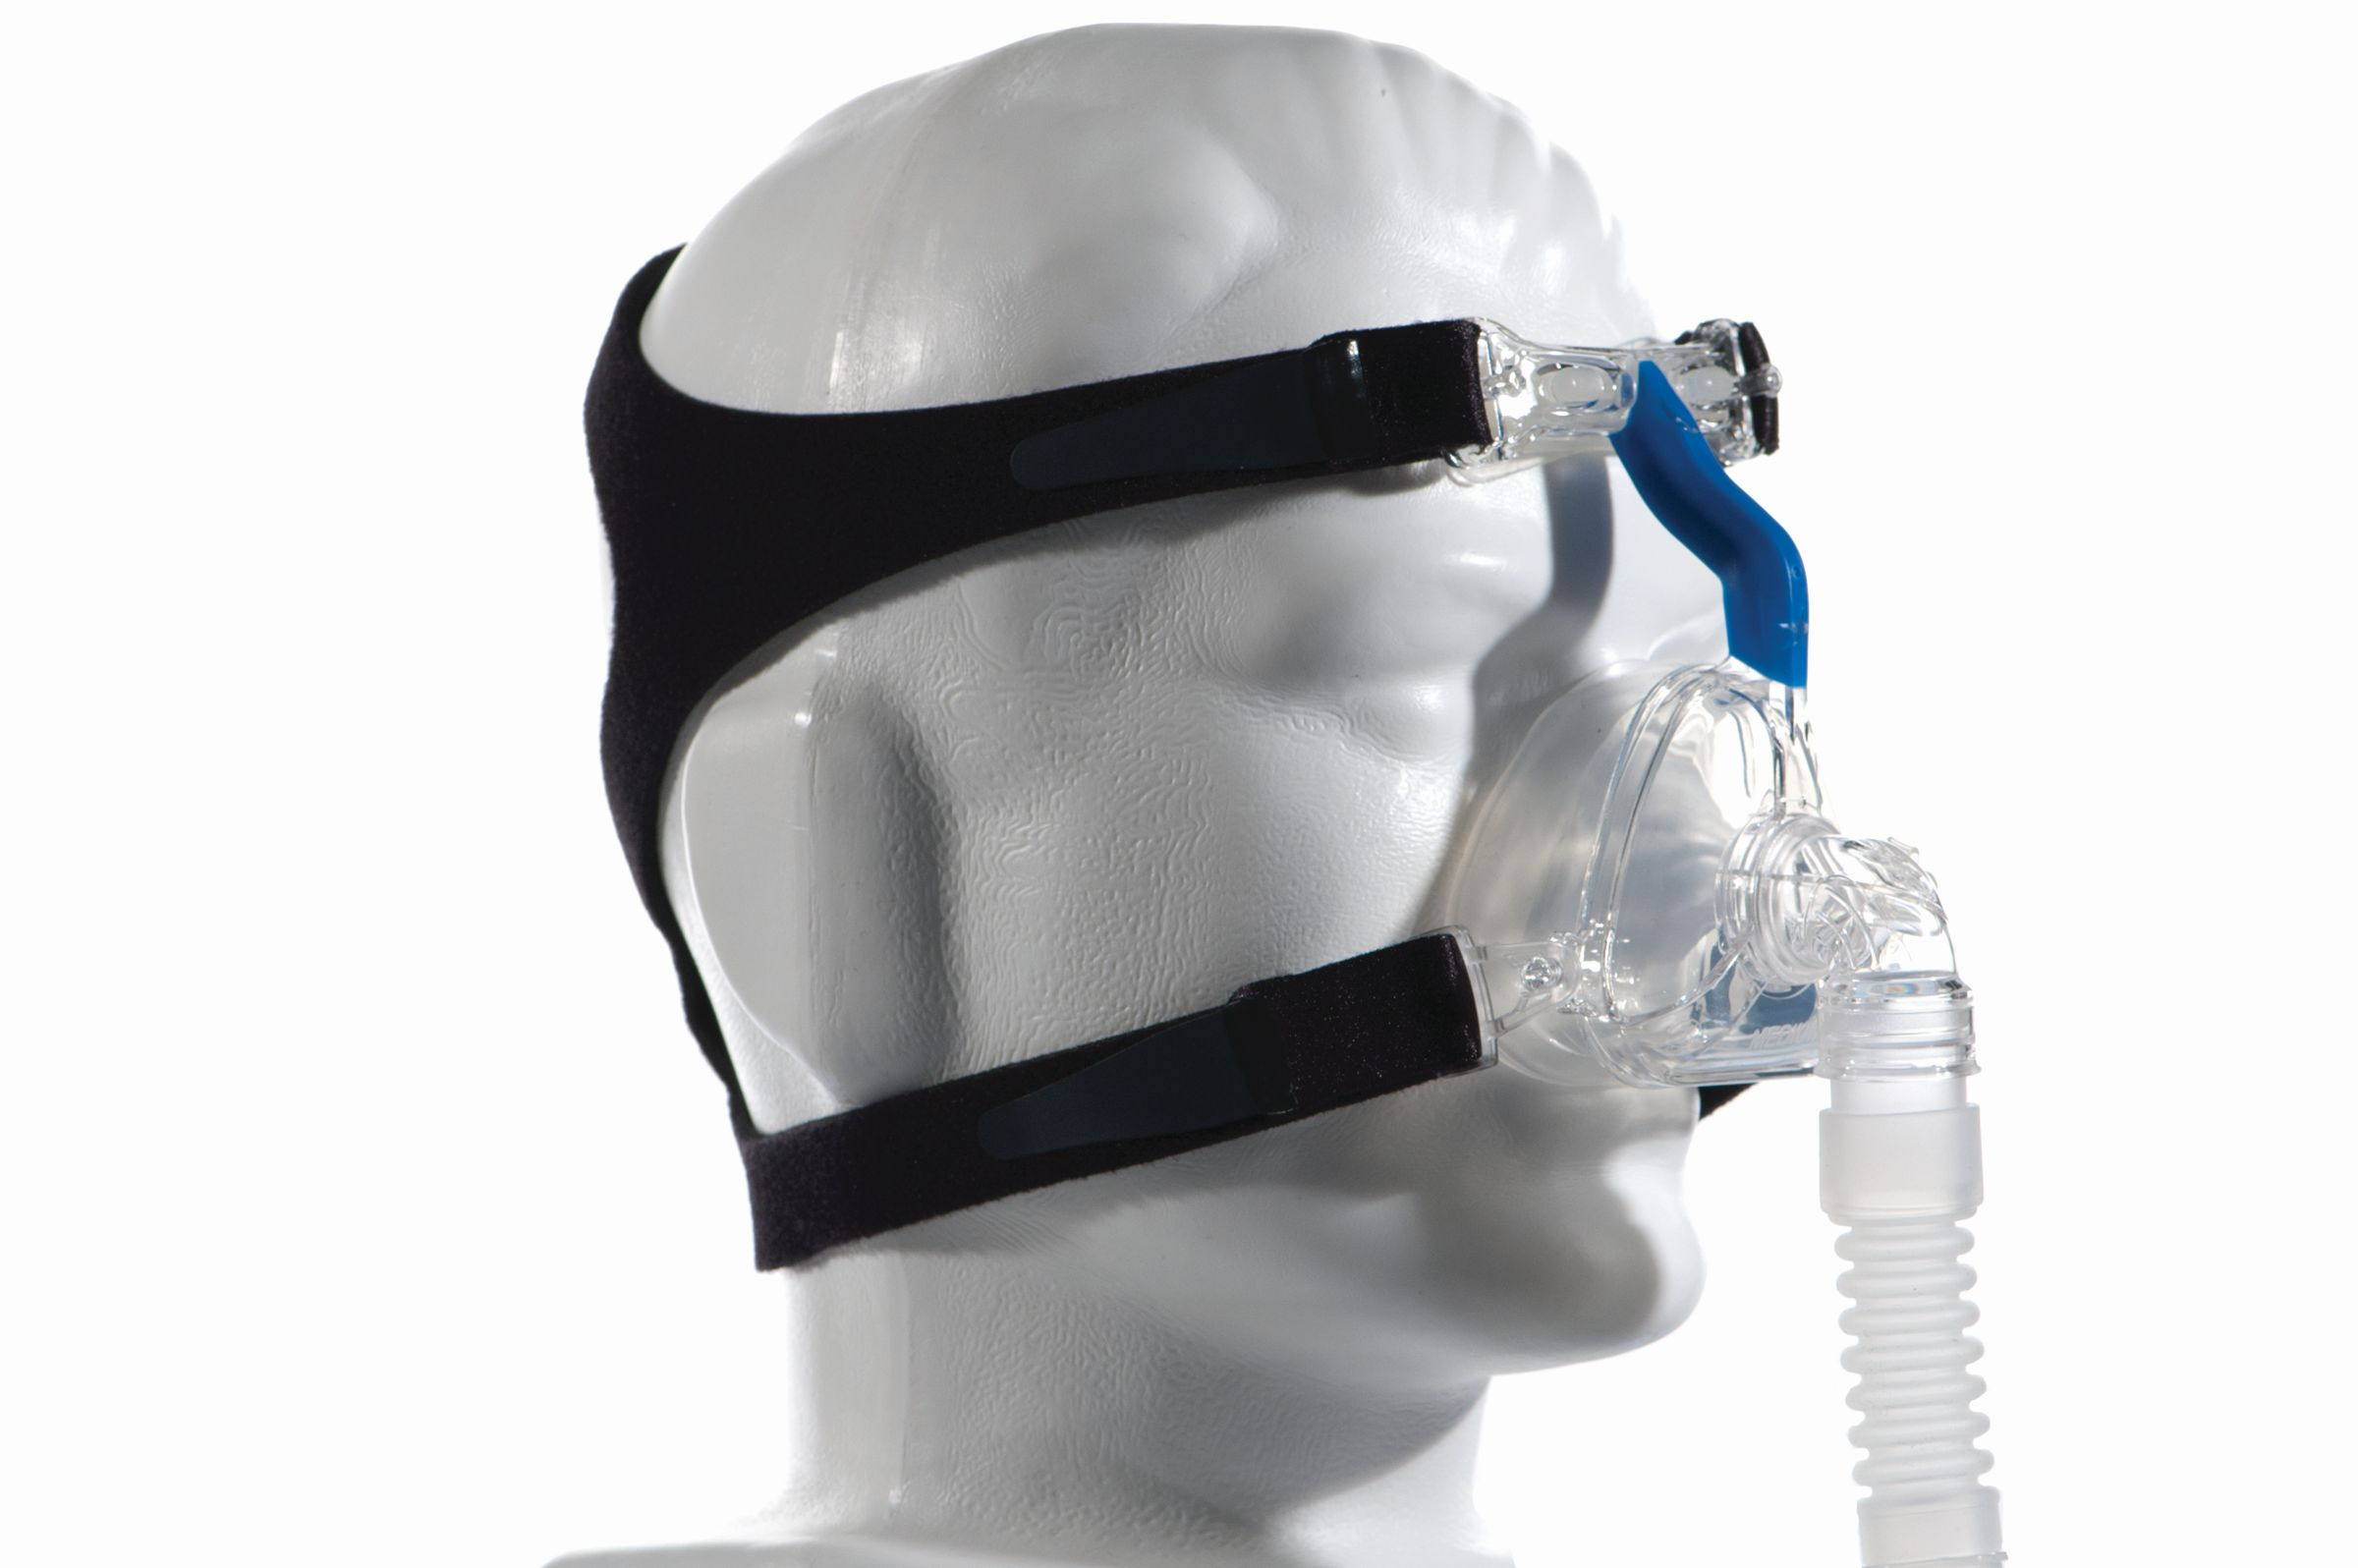 SP-SOPN-M AG Industries Sopora Nasal Mask product photo